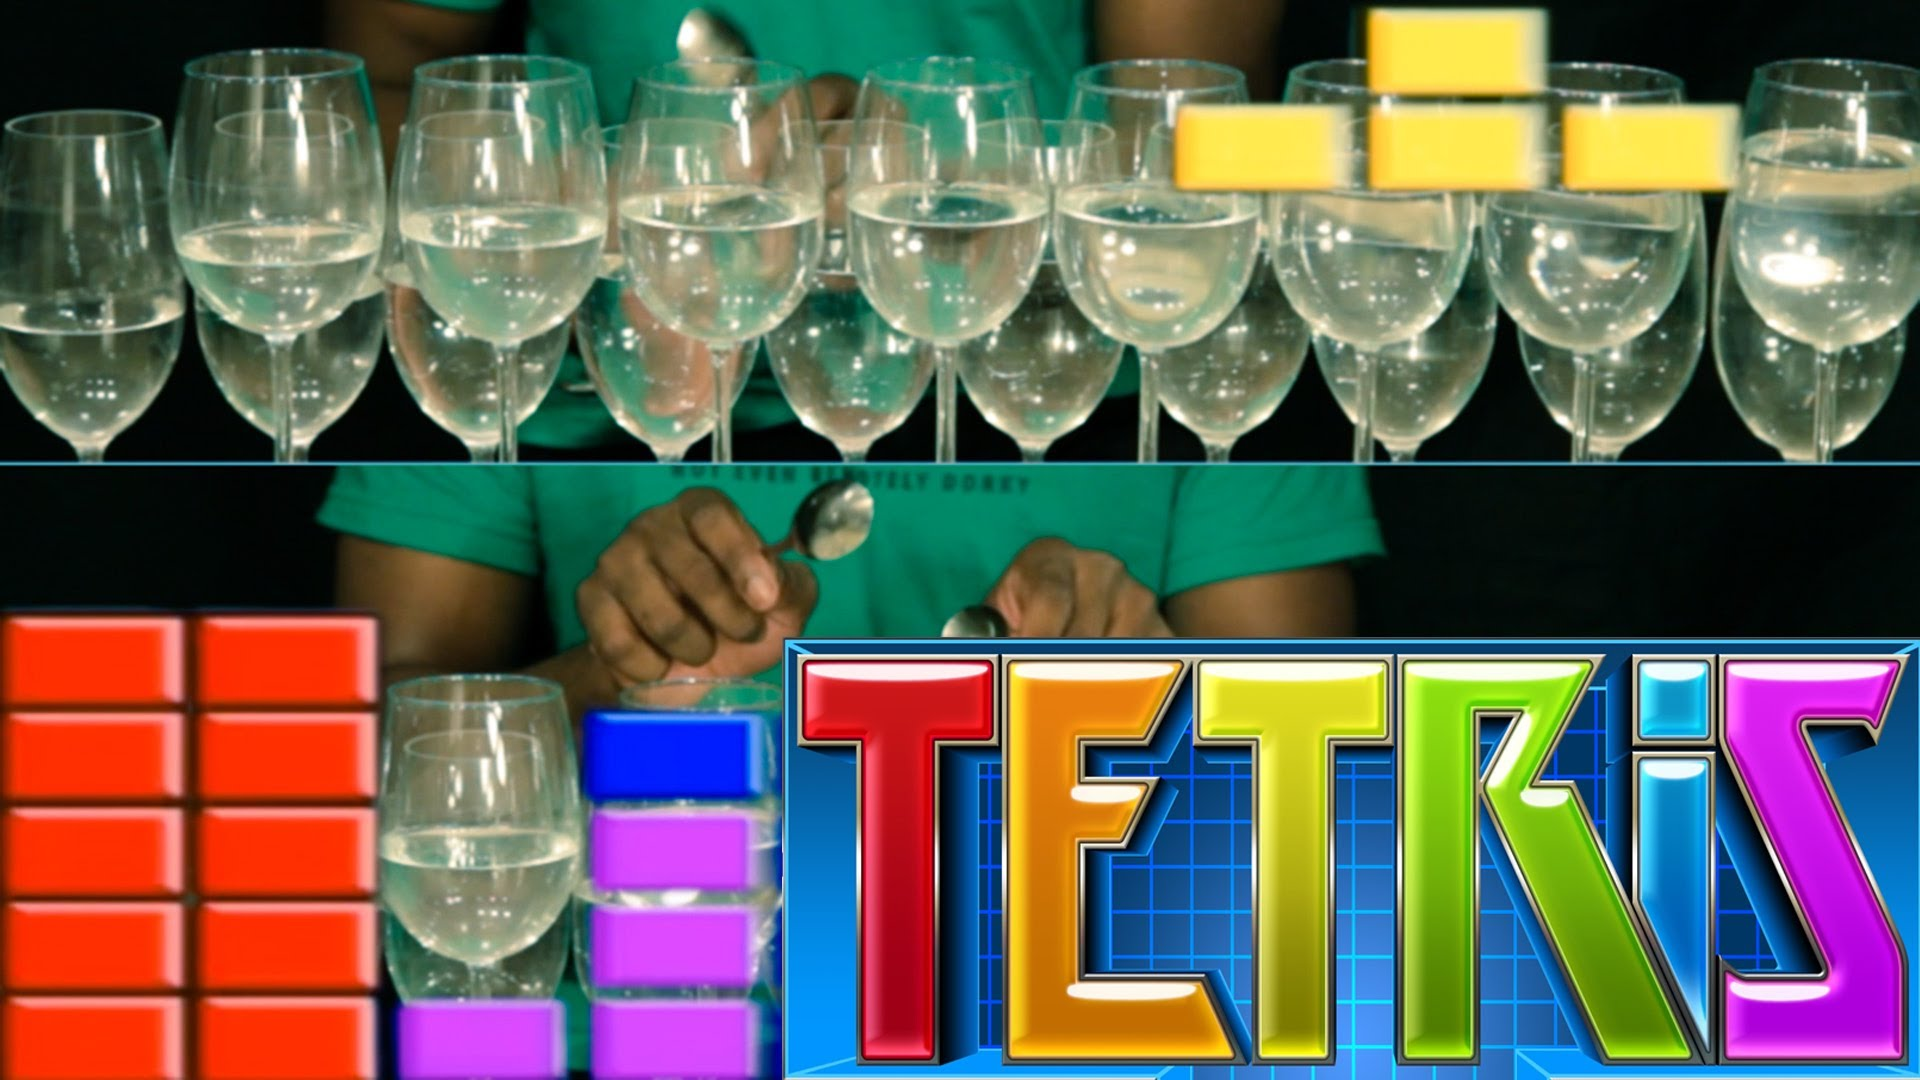 A Man Plays the 'Theme A' Song From the 'Tetris' Video Game Franchise on Wine Glasses